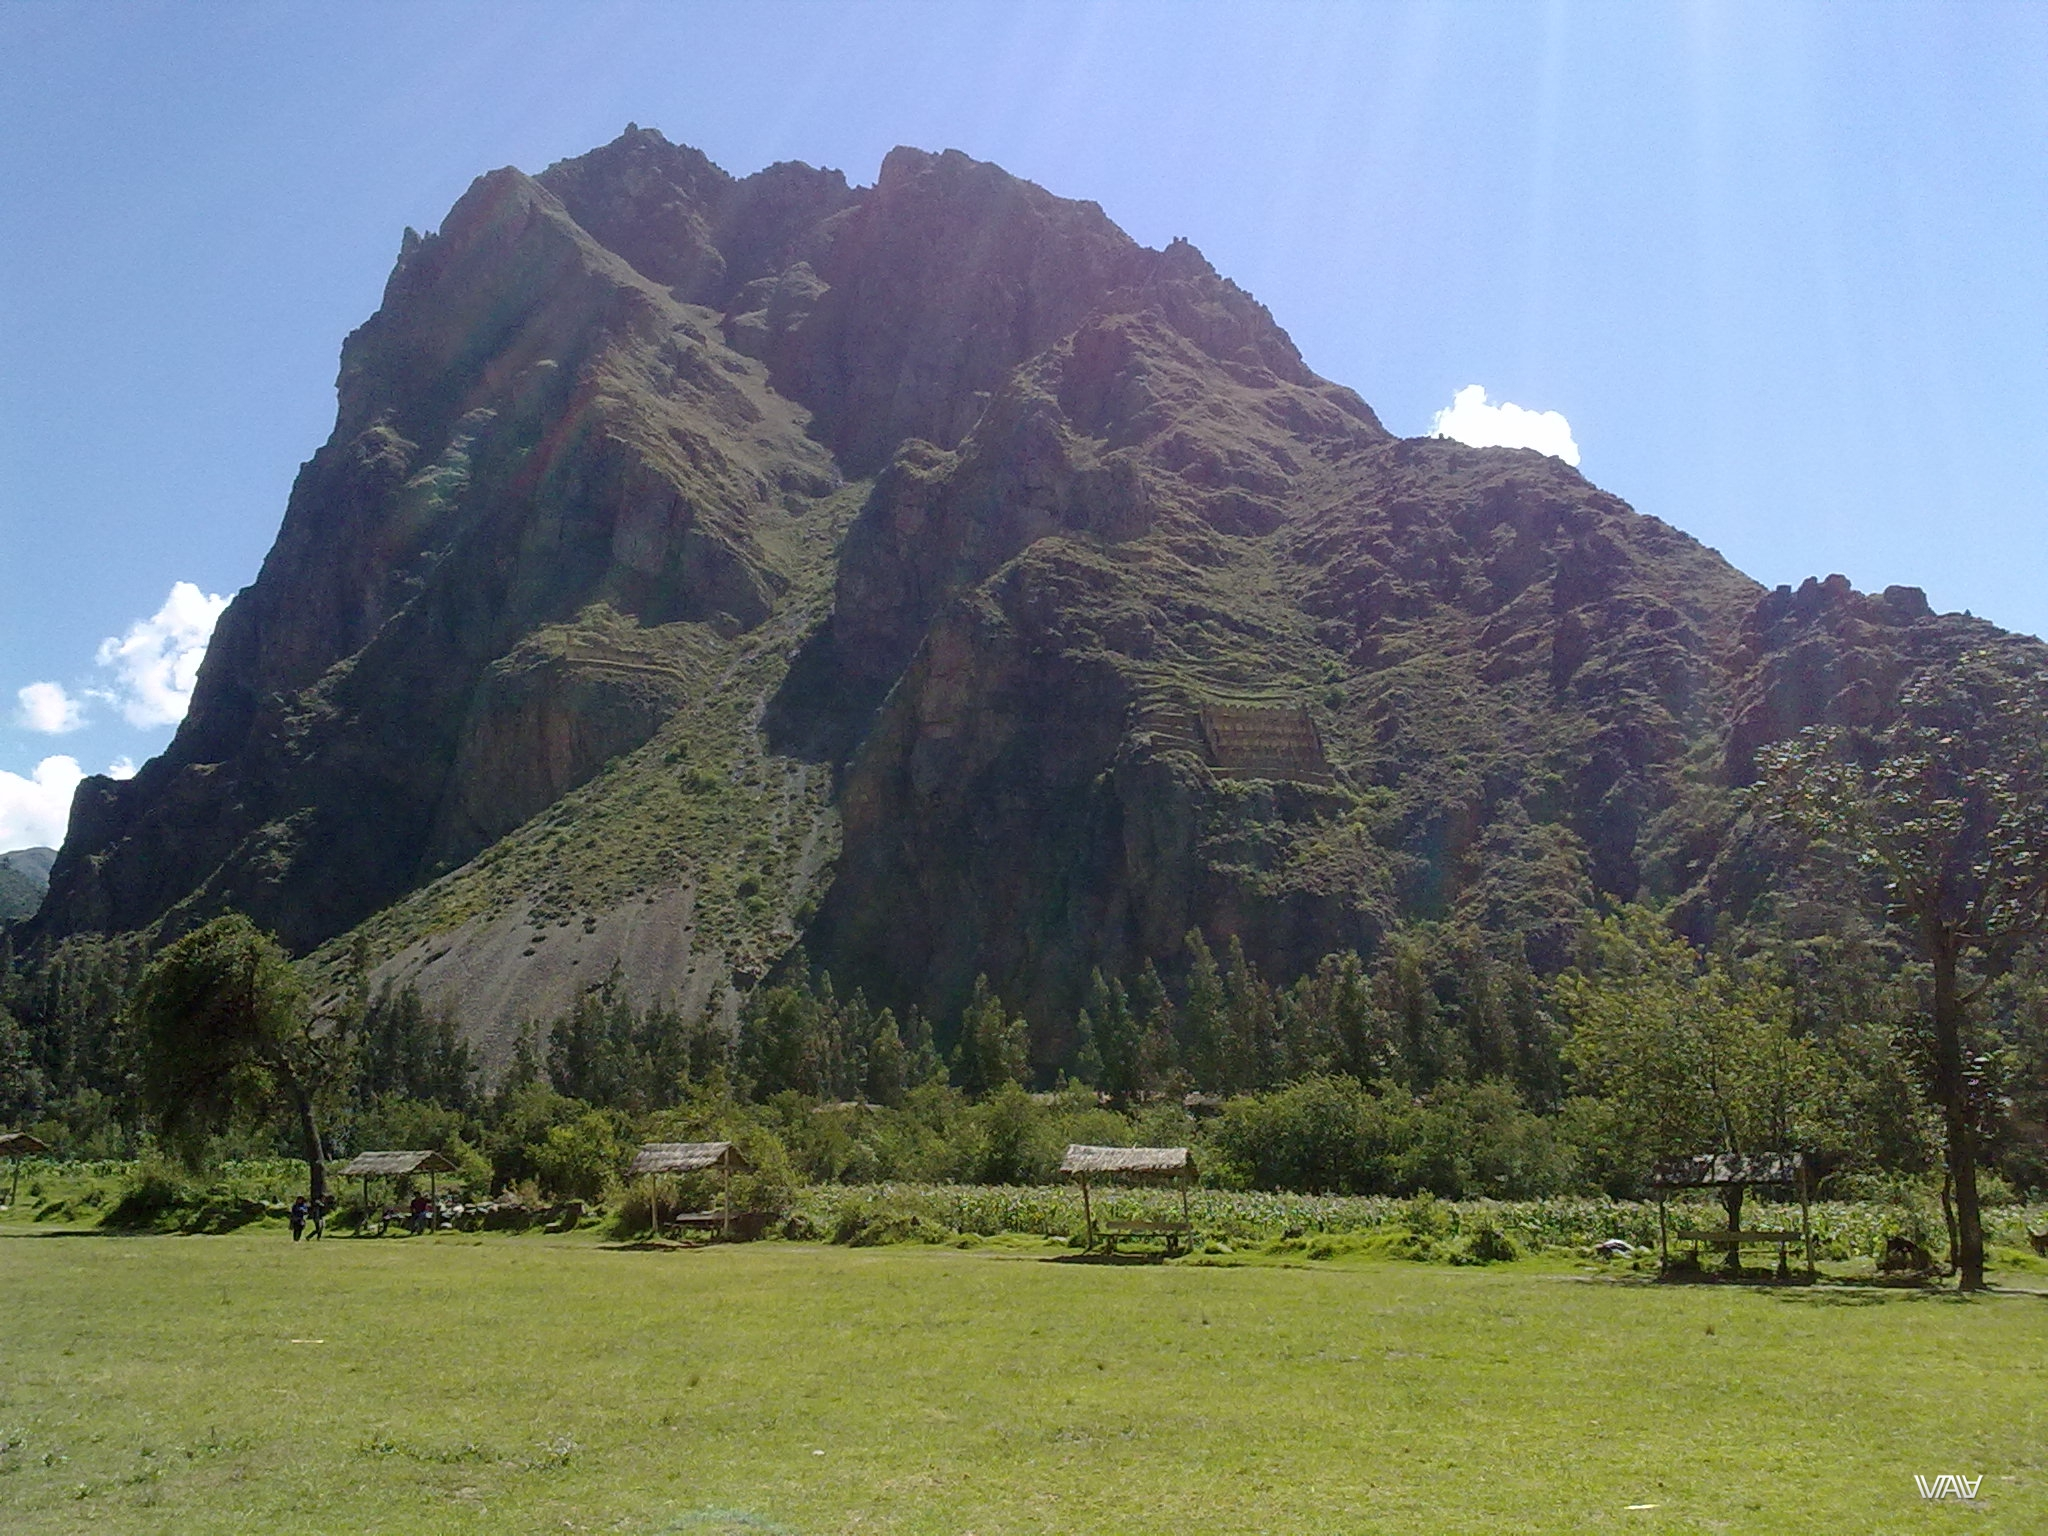 An incredibly beautiful view from the central part of the ancient city of Ollantaytambo, Peru.